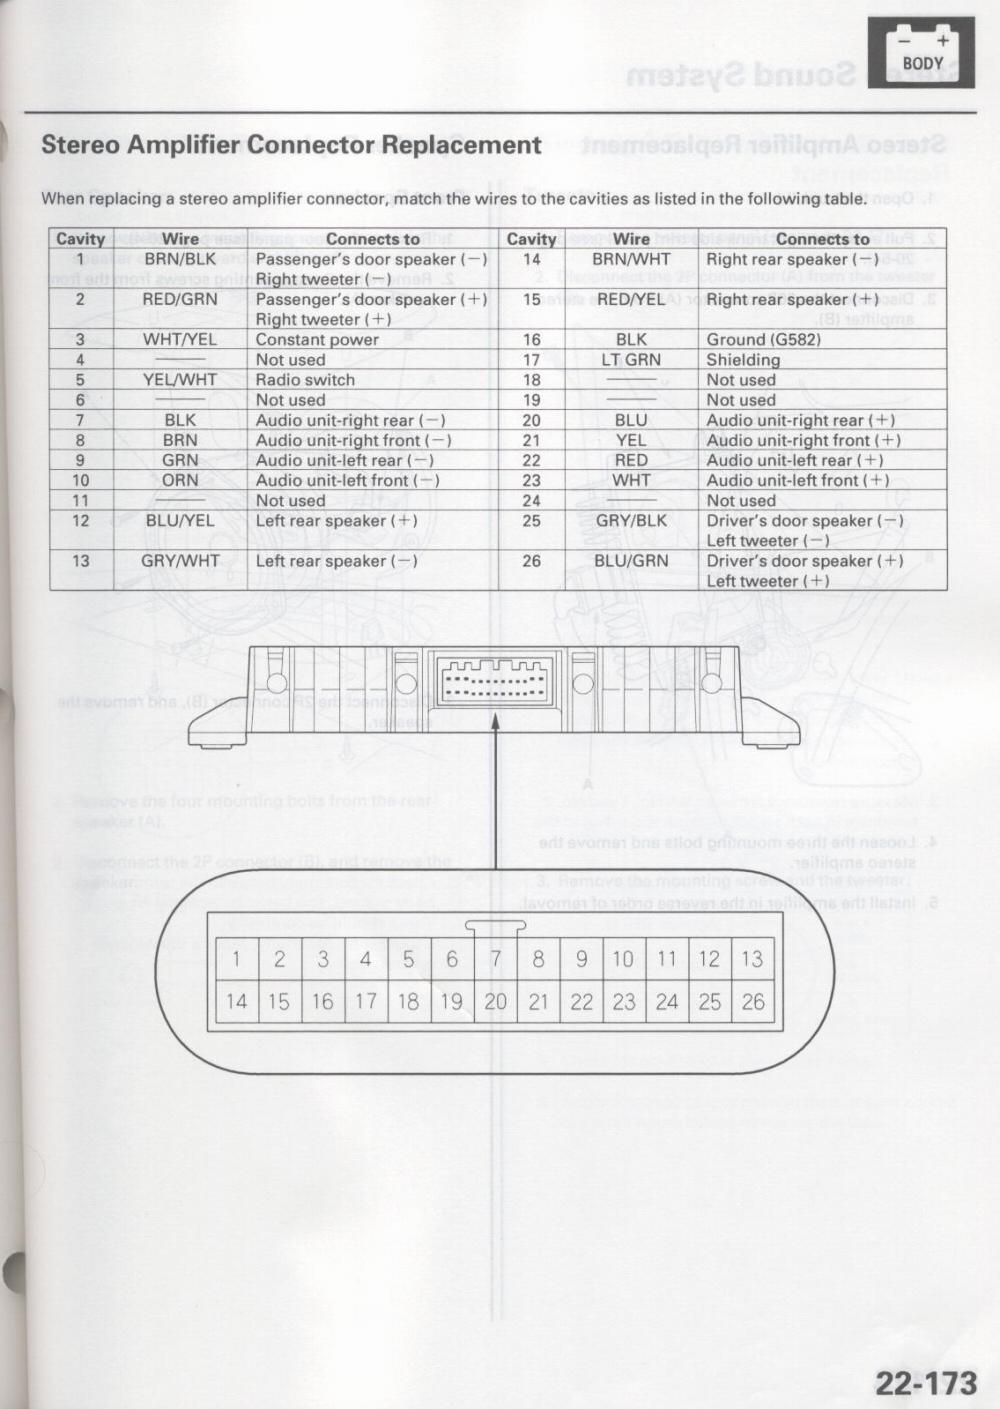 Acura 2002 TL car stereo amplifier wiring diagram harness car radio stereo audio wiring diagram autoradio connector wire 2012 chrysler 200 speaker wiring diagram at mifinder.co